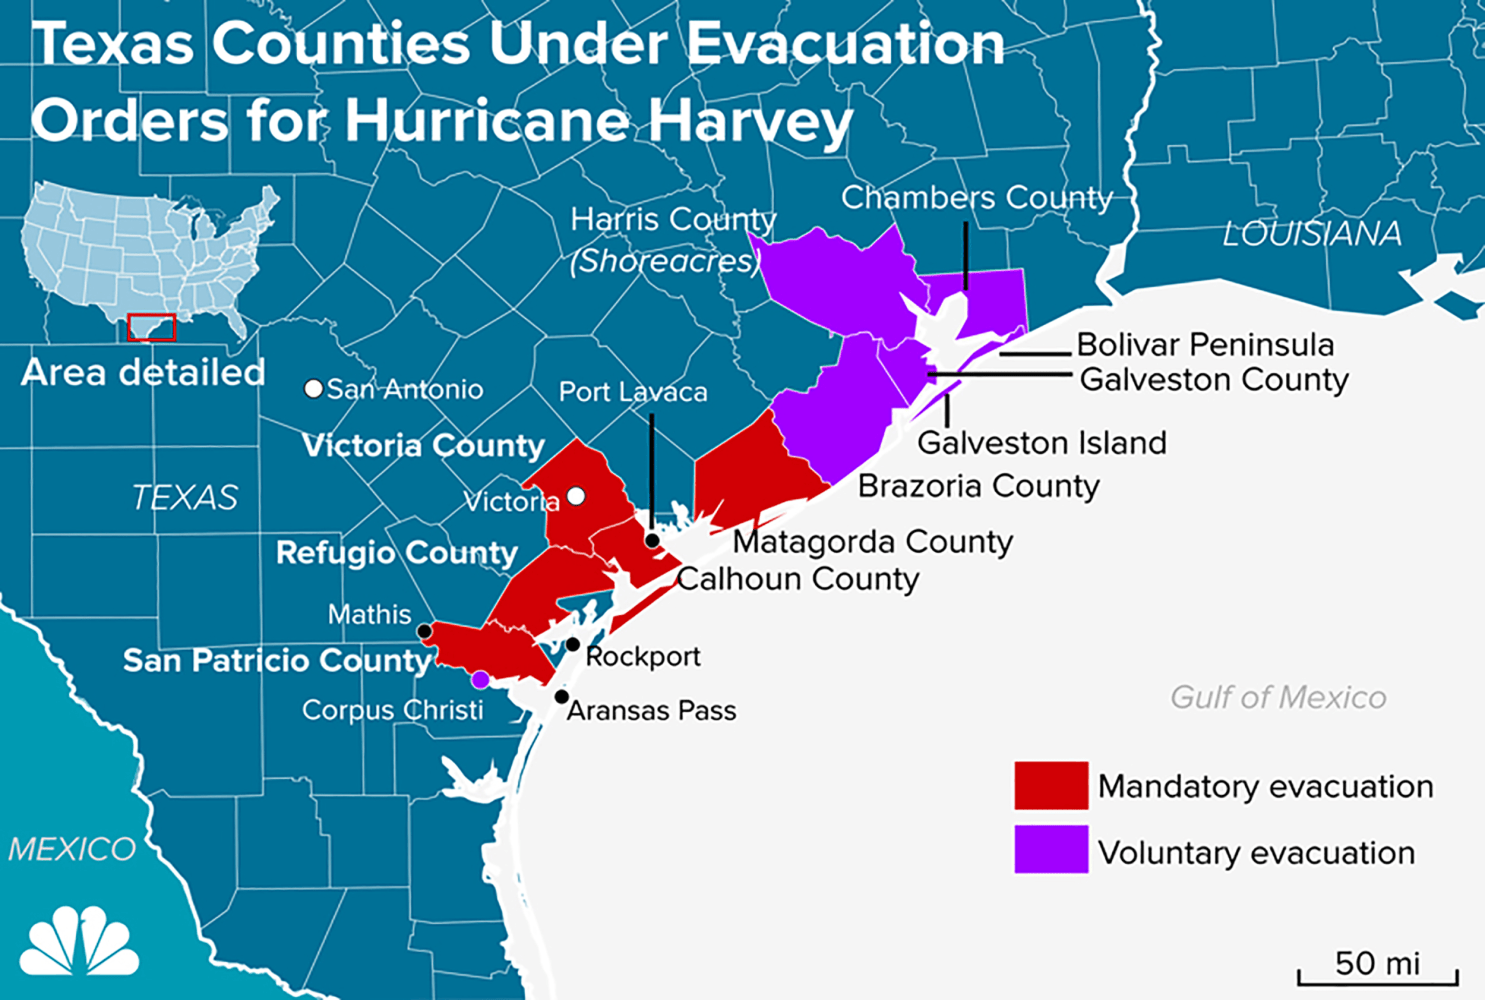 TX Counties Under Evacuation Order NBC News